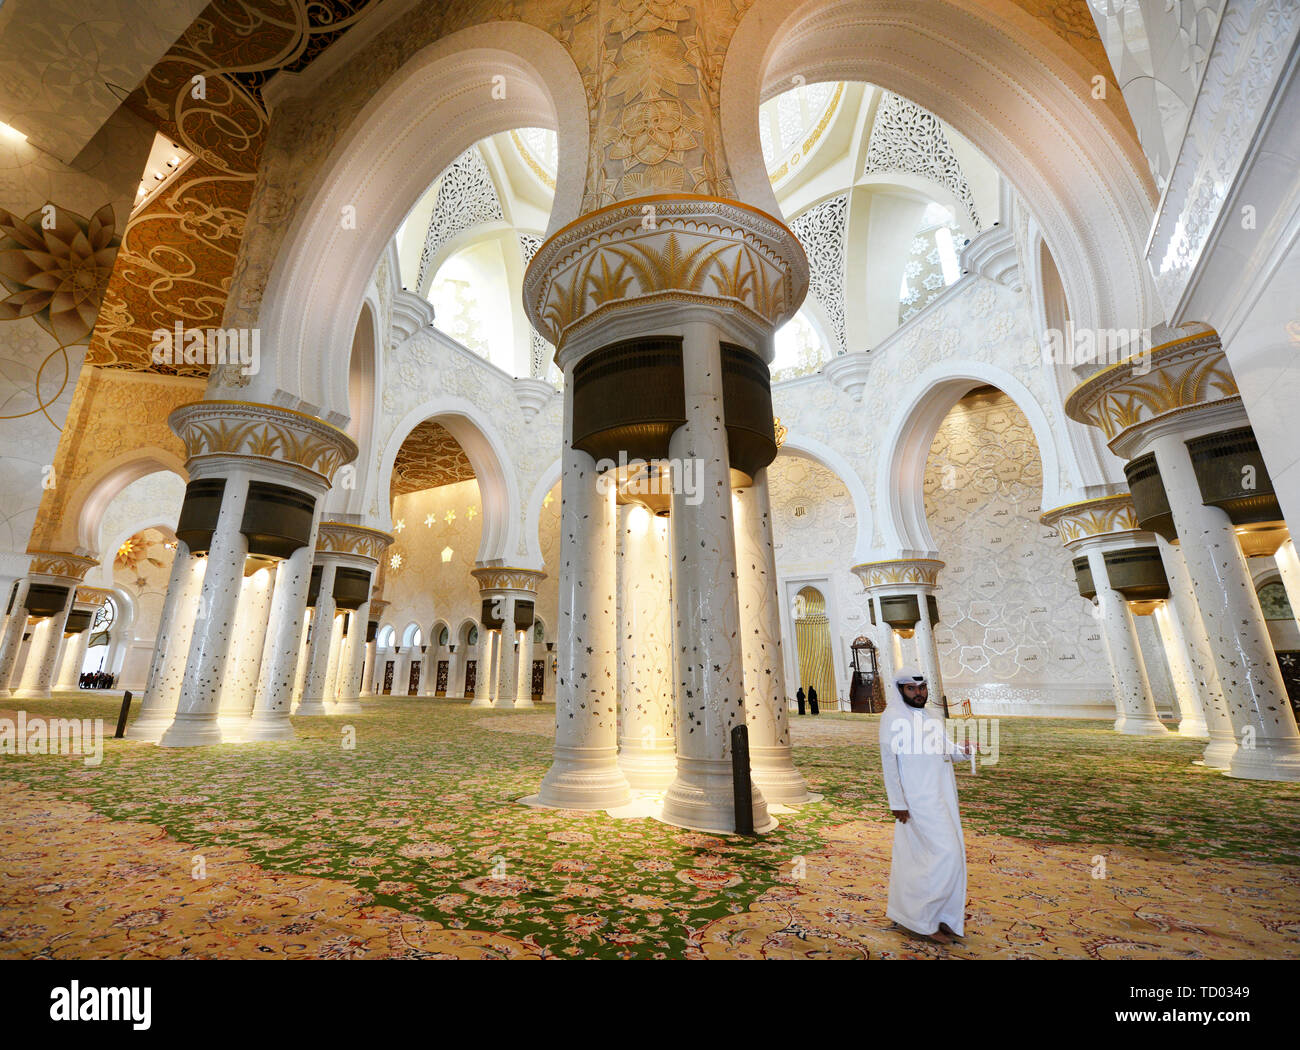 The interior of the beautiful Sheikh Zayed Grand Mosque in Abu Dhabi. Stock Photo